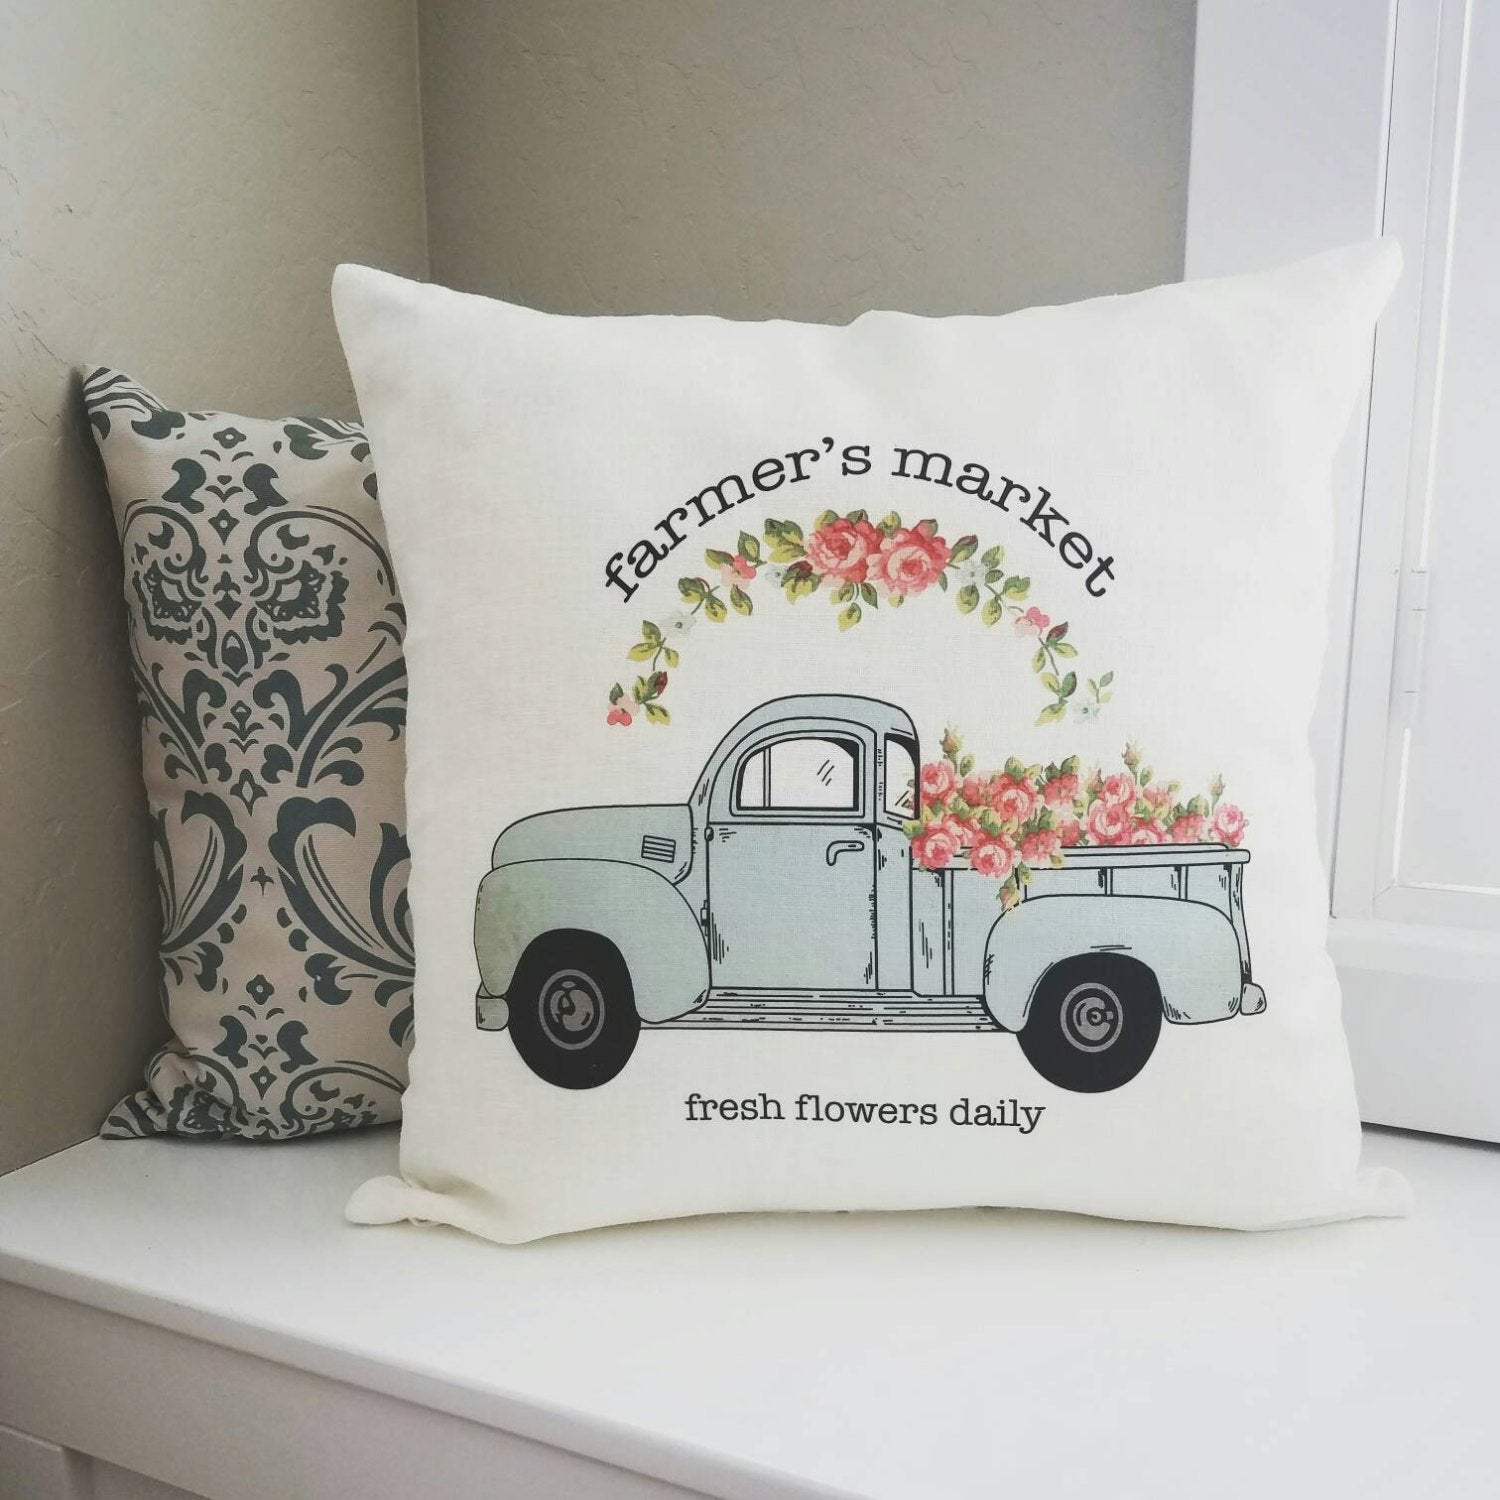 SALE, Farmers market Pillow Cover, truck Pillow Cover, Spring pillow cover, 18x18